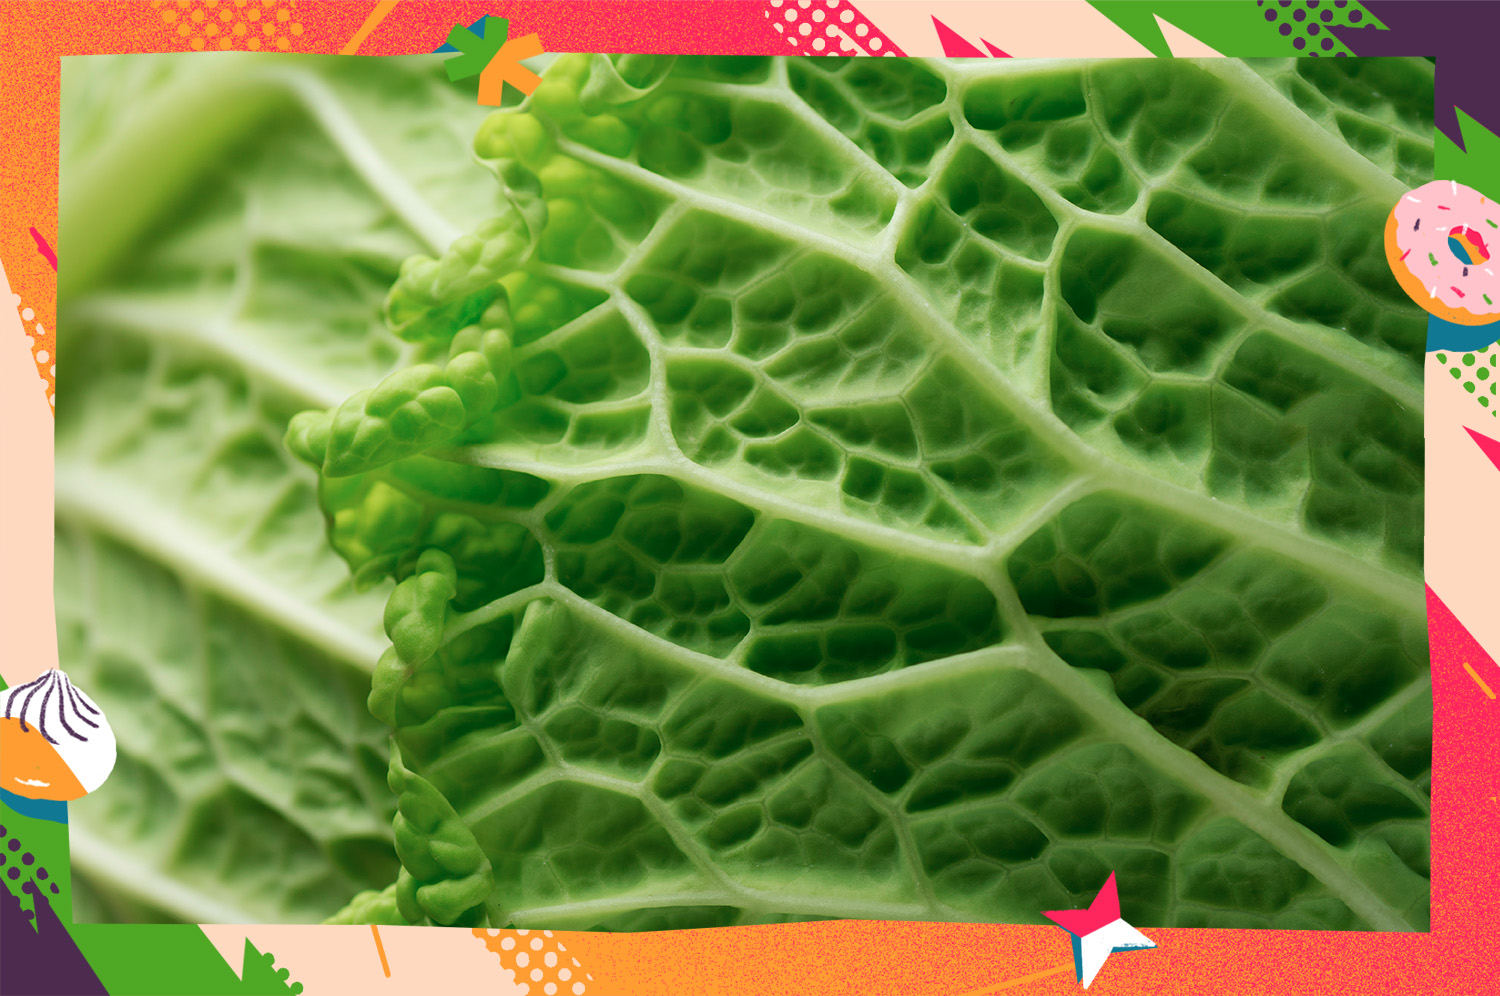 The leaves of savoy cabbage close-up.